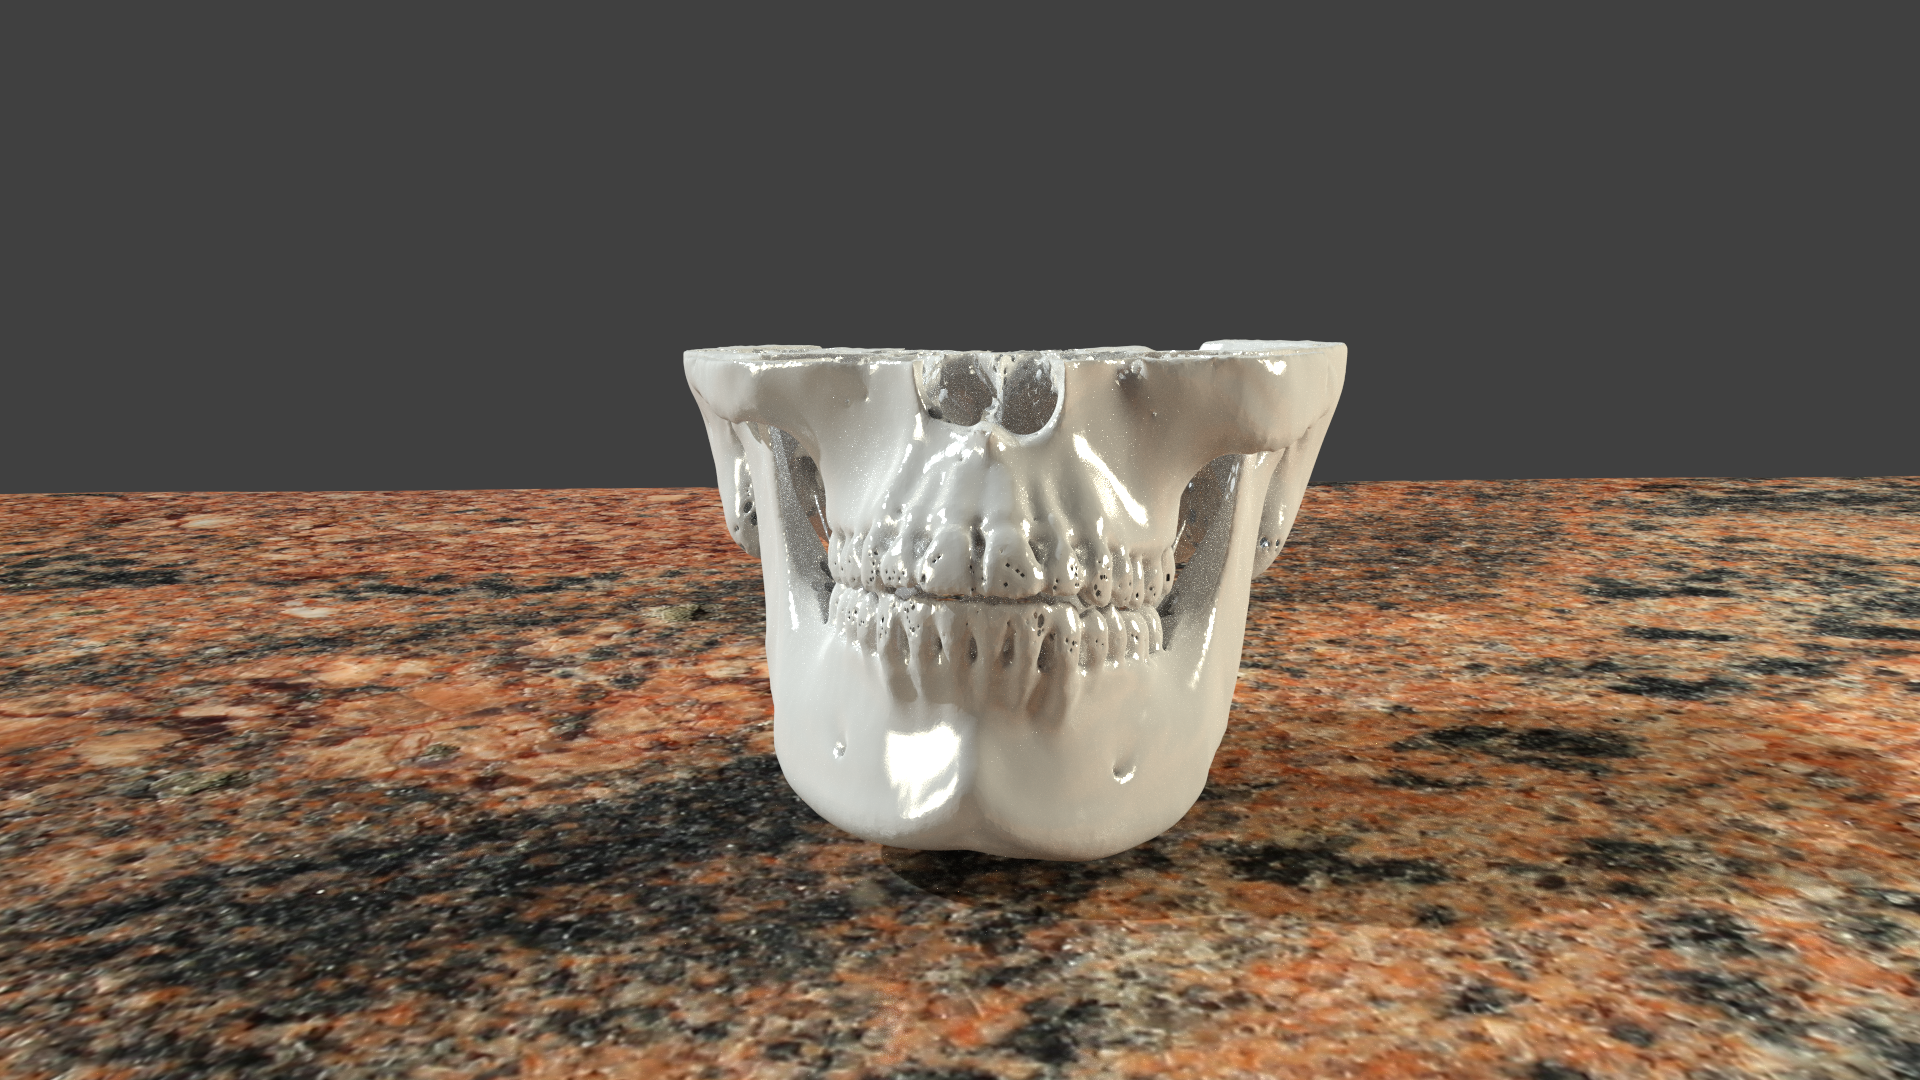 Exploring Teeth in a 3D Model Reveals More than You Think